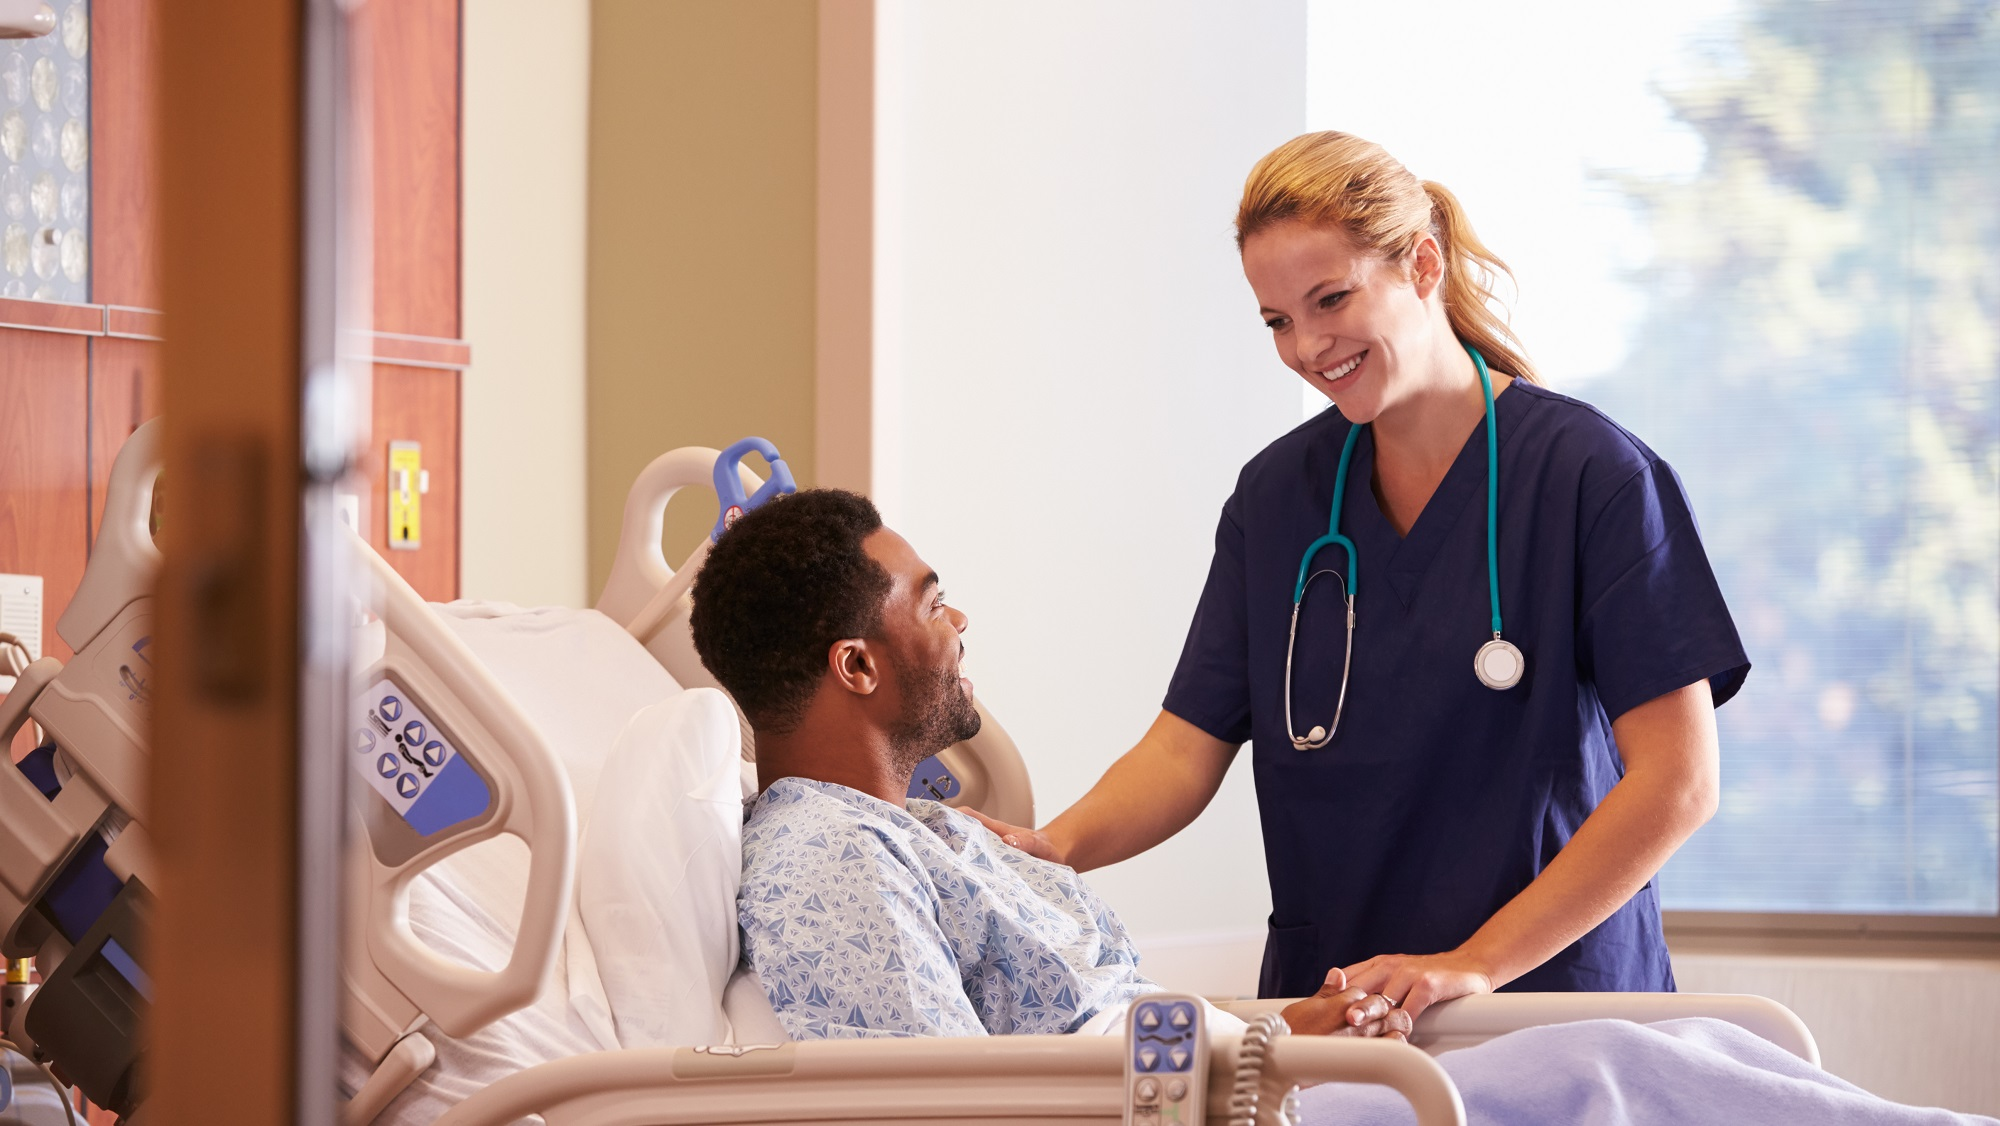 nurses blog - a career in nursing